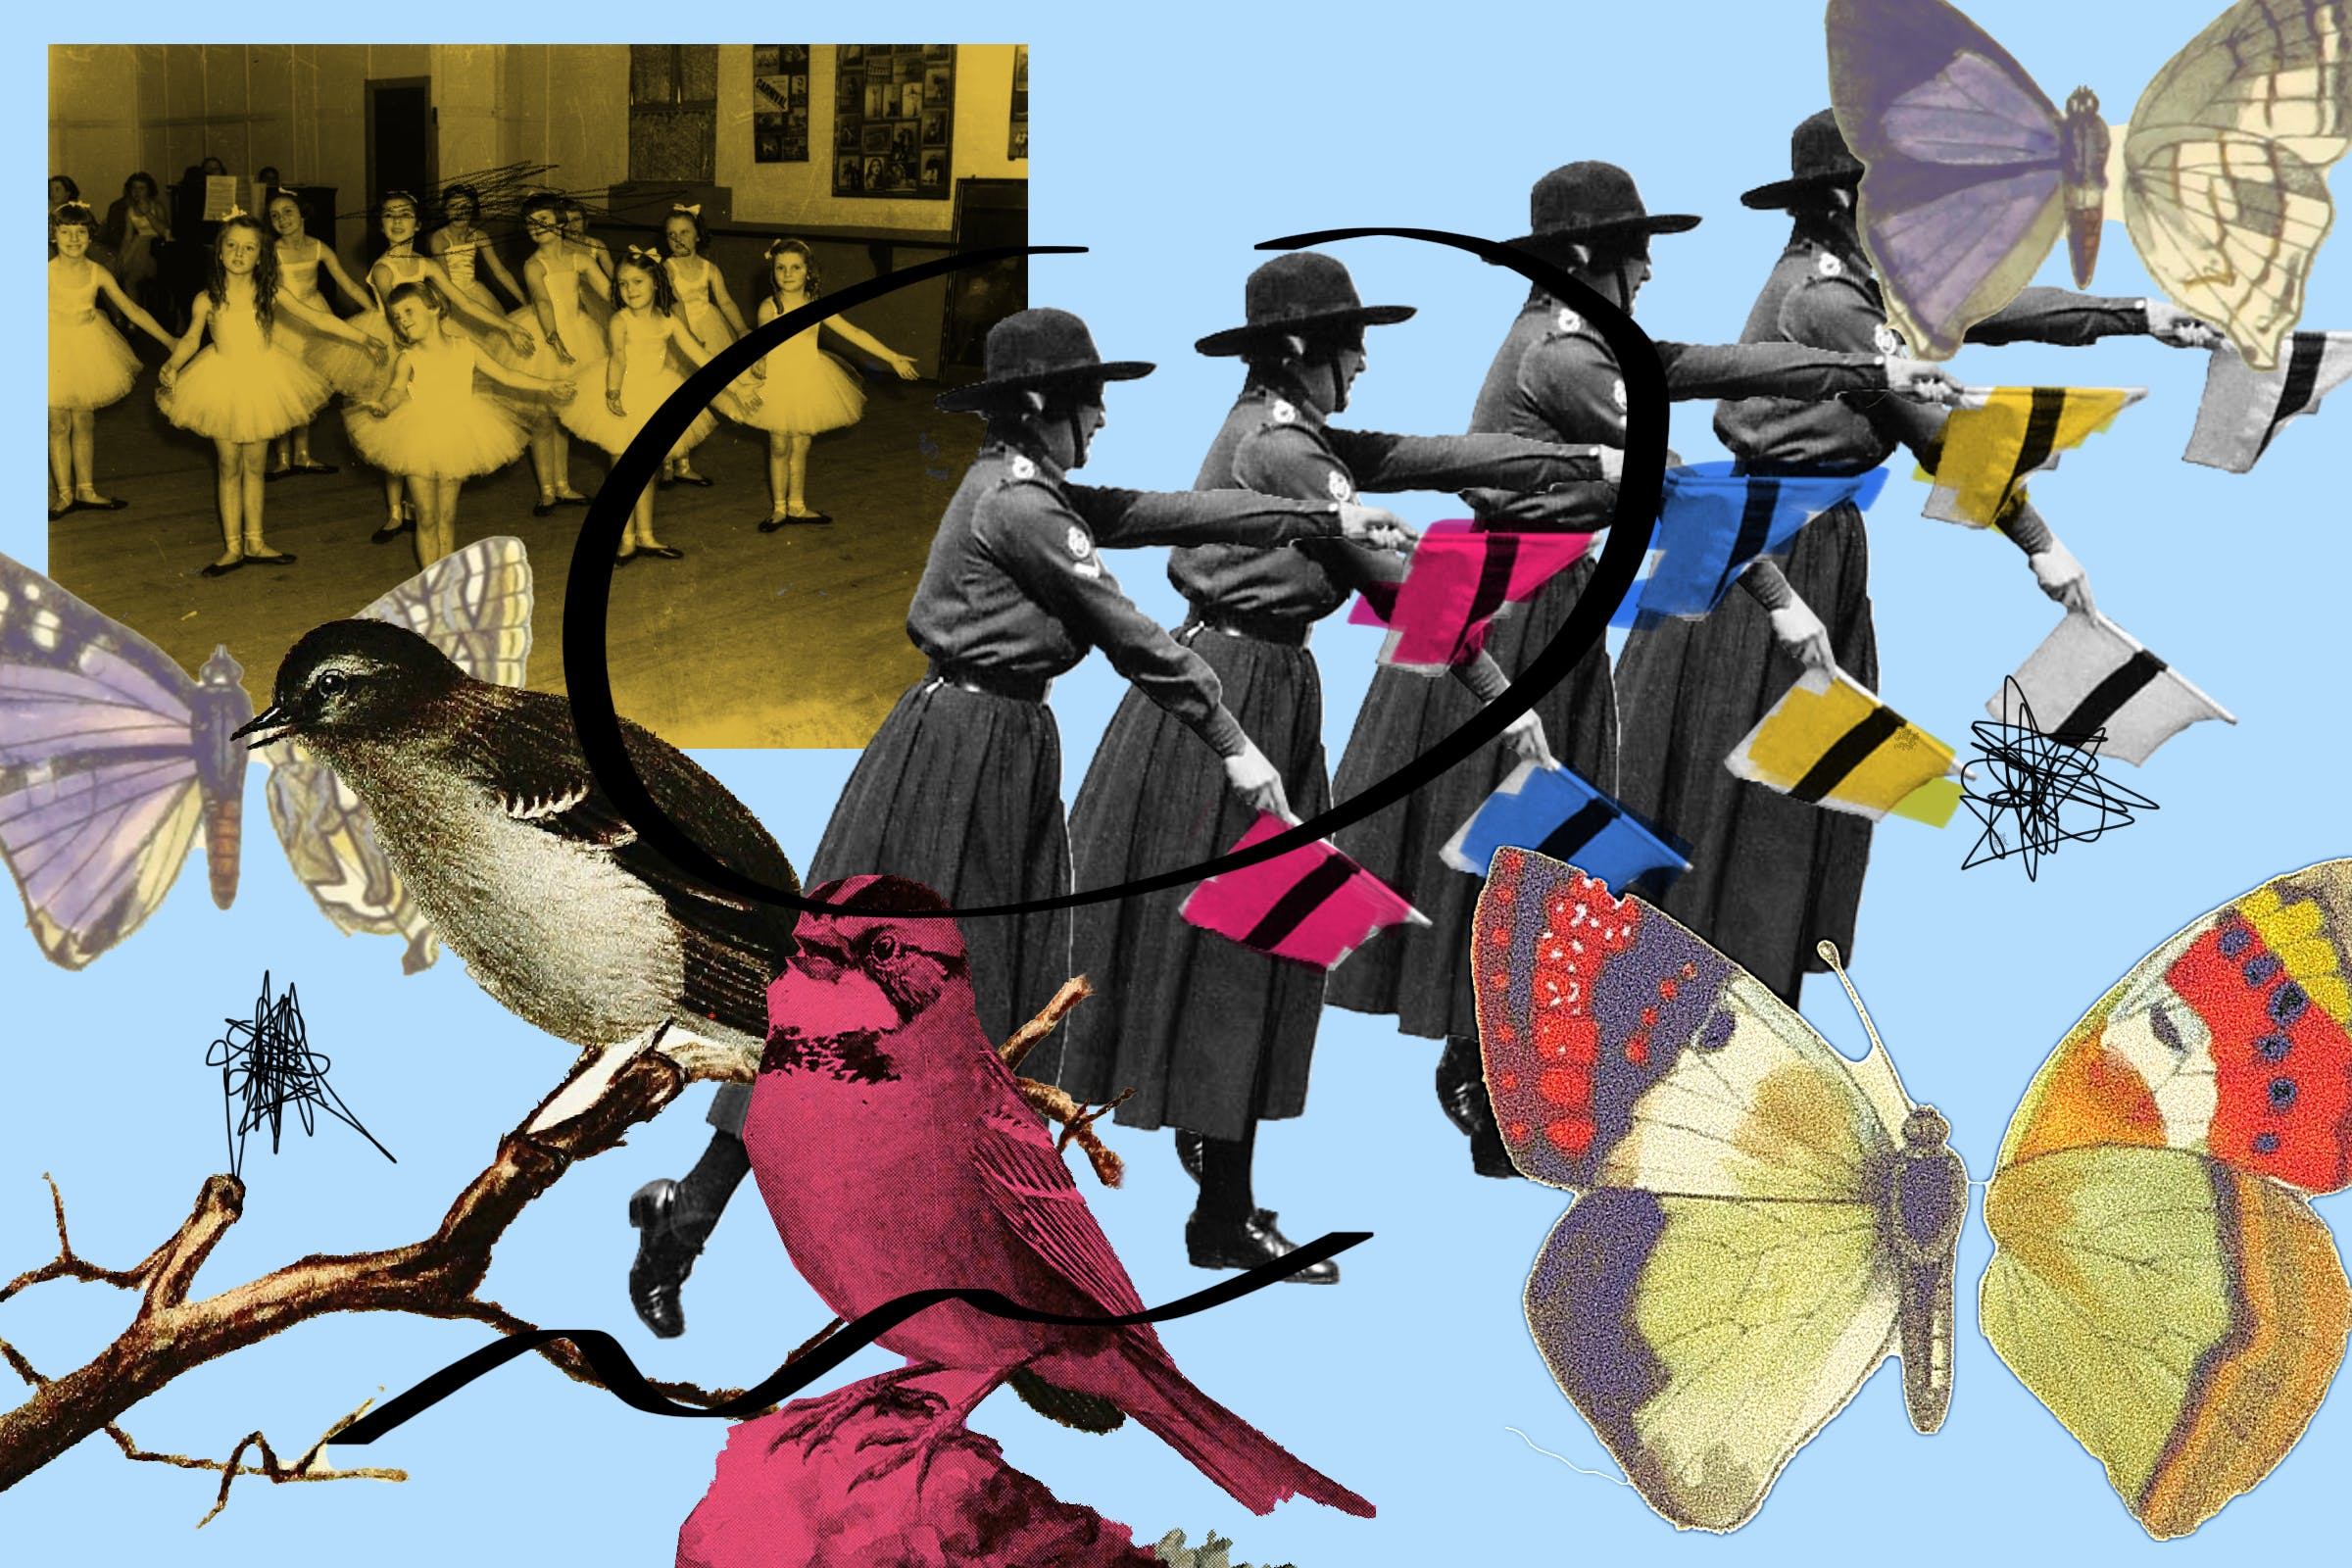 A photo collage combining butterflies, mockingbirds, and semaphore signaling